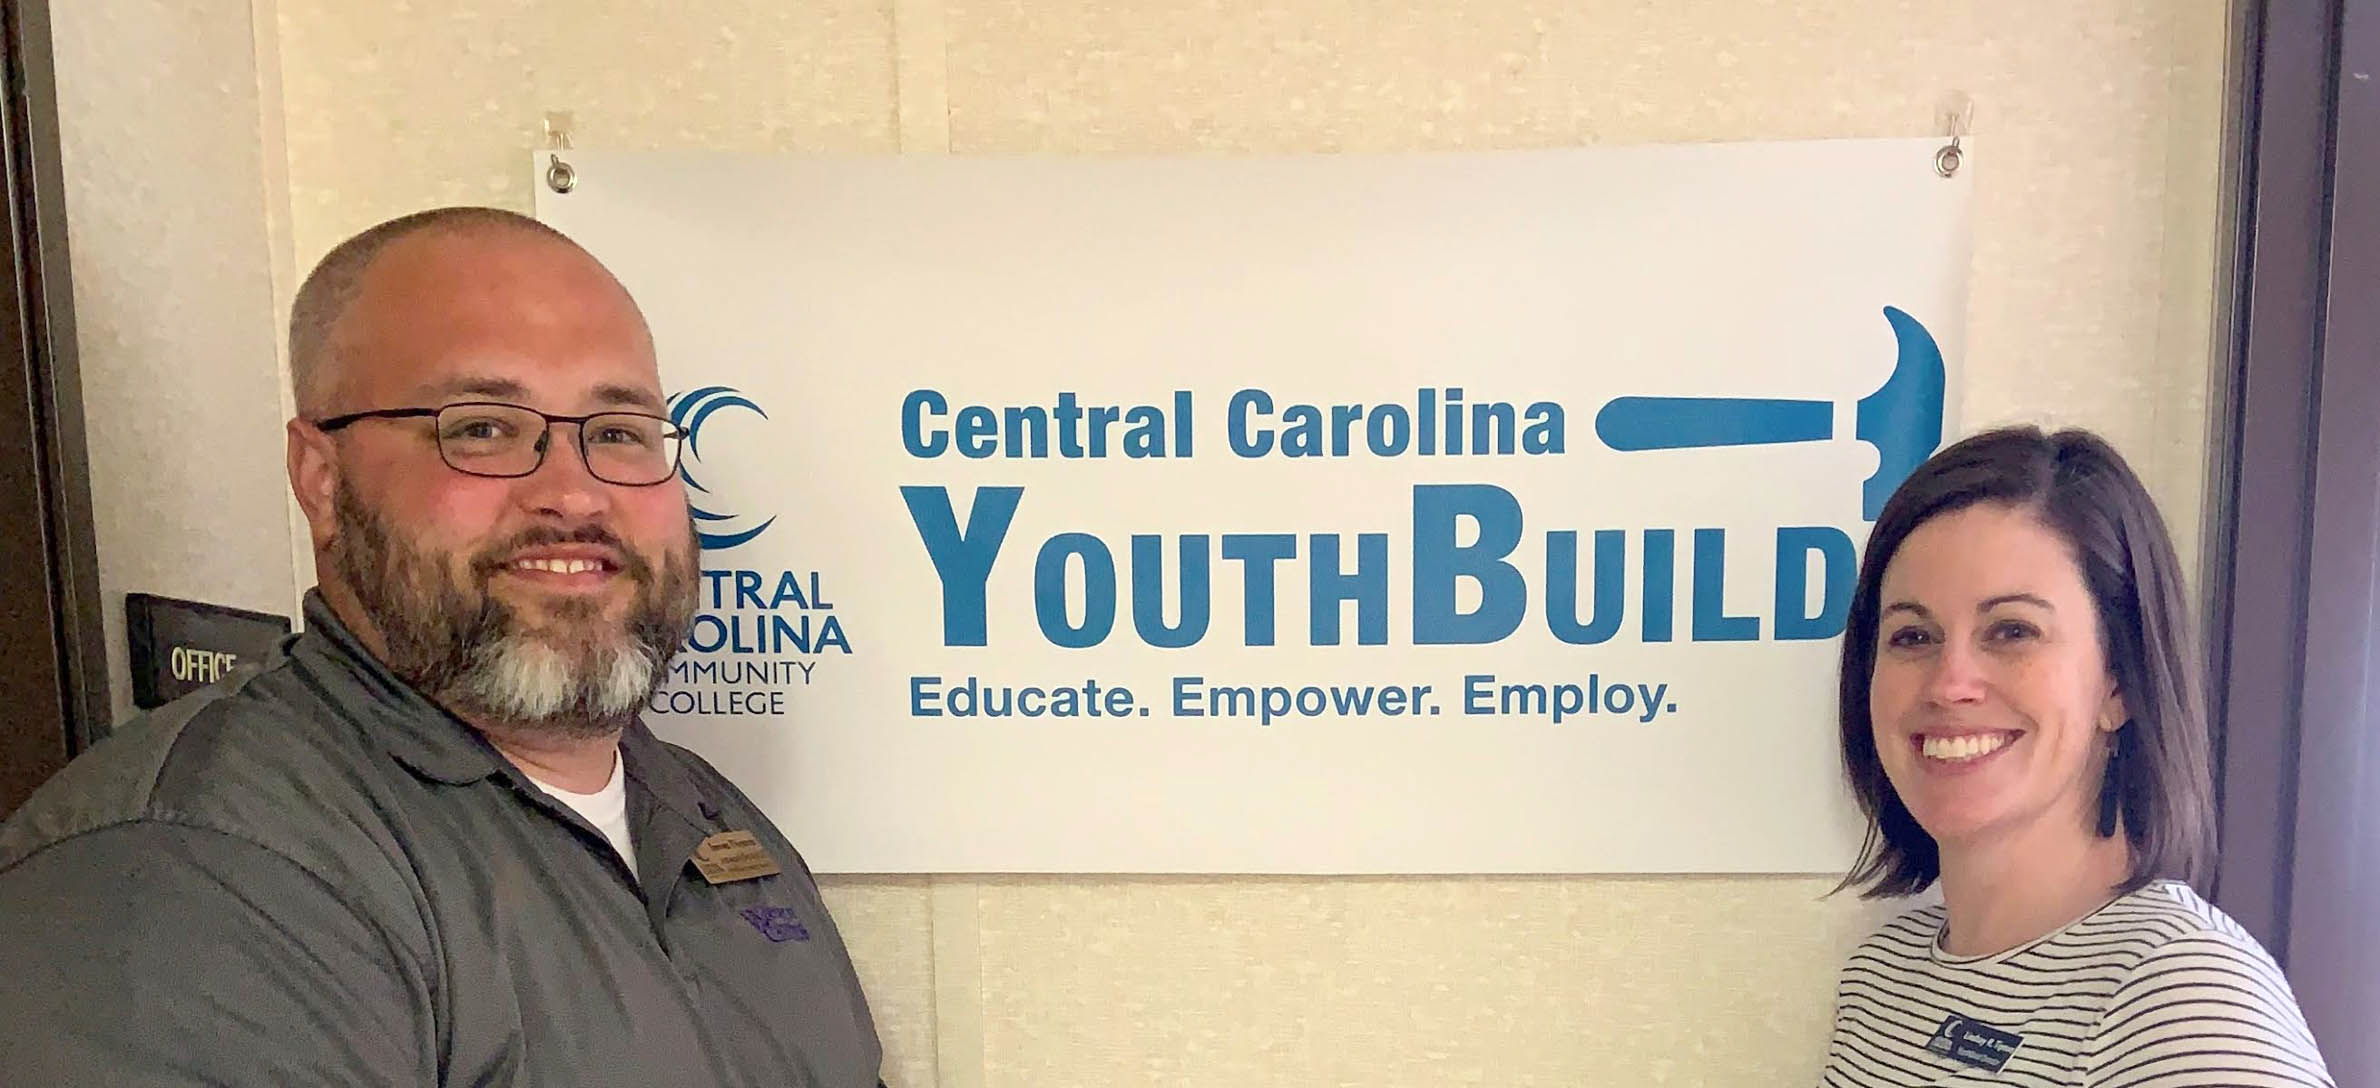 Click to enlarge,  James Thomas (left) is Assistant Director and Lindsay Tipton (right) is Director of the YouthBuild program at Central Carolina Community College. To learn more about the YouthBuild program at CCCC, visit www.cccc.edu/youthbuild.